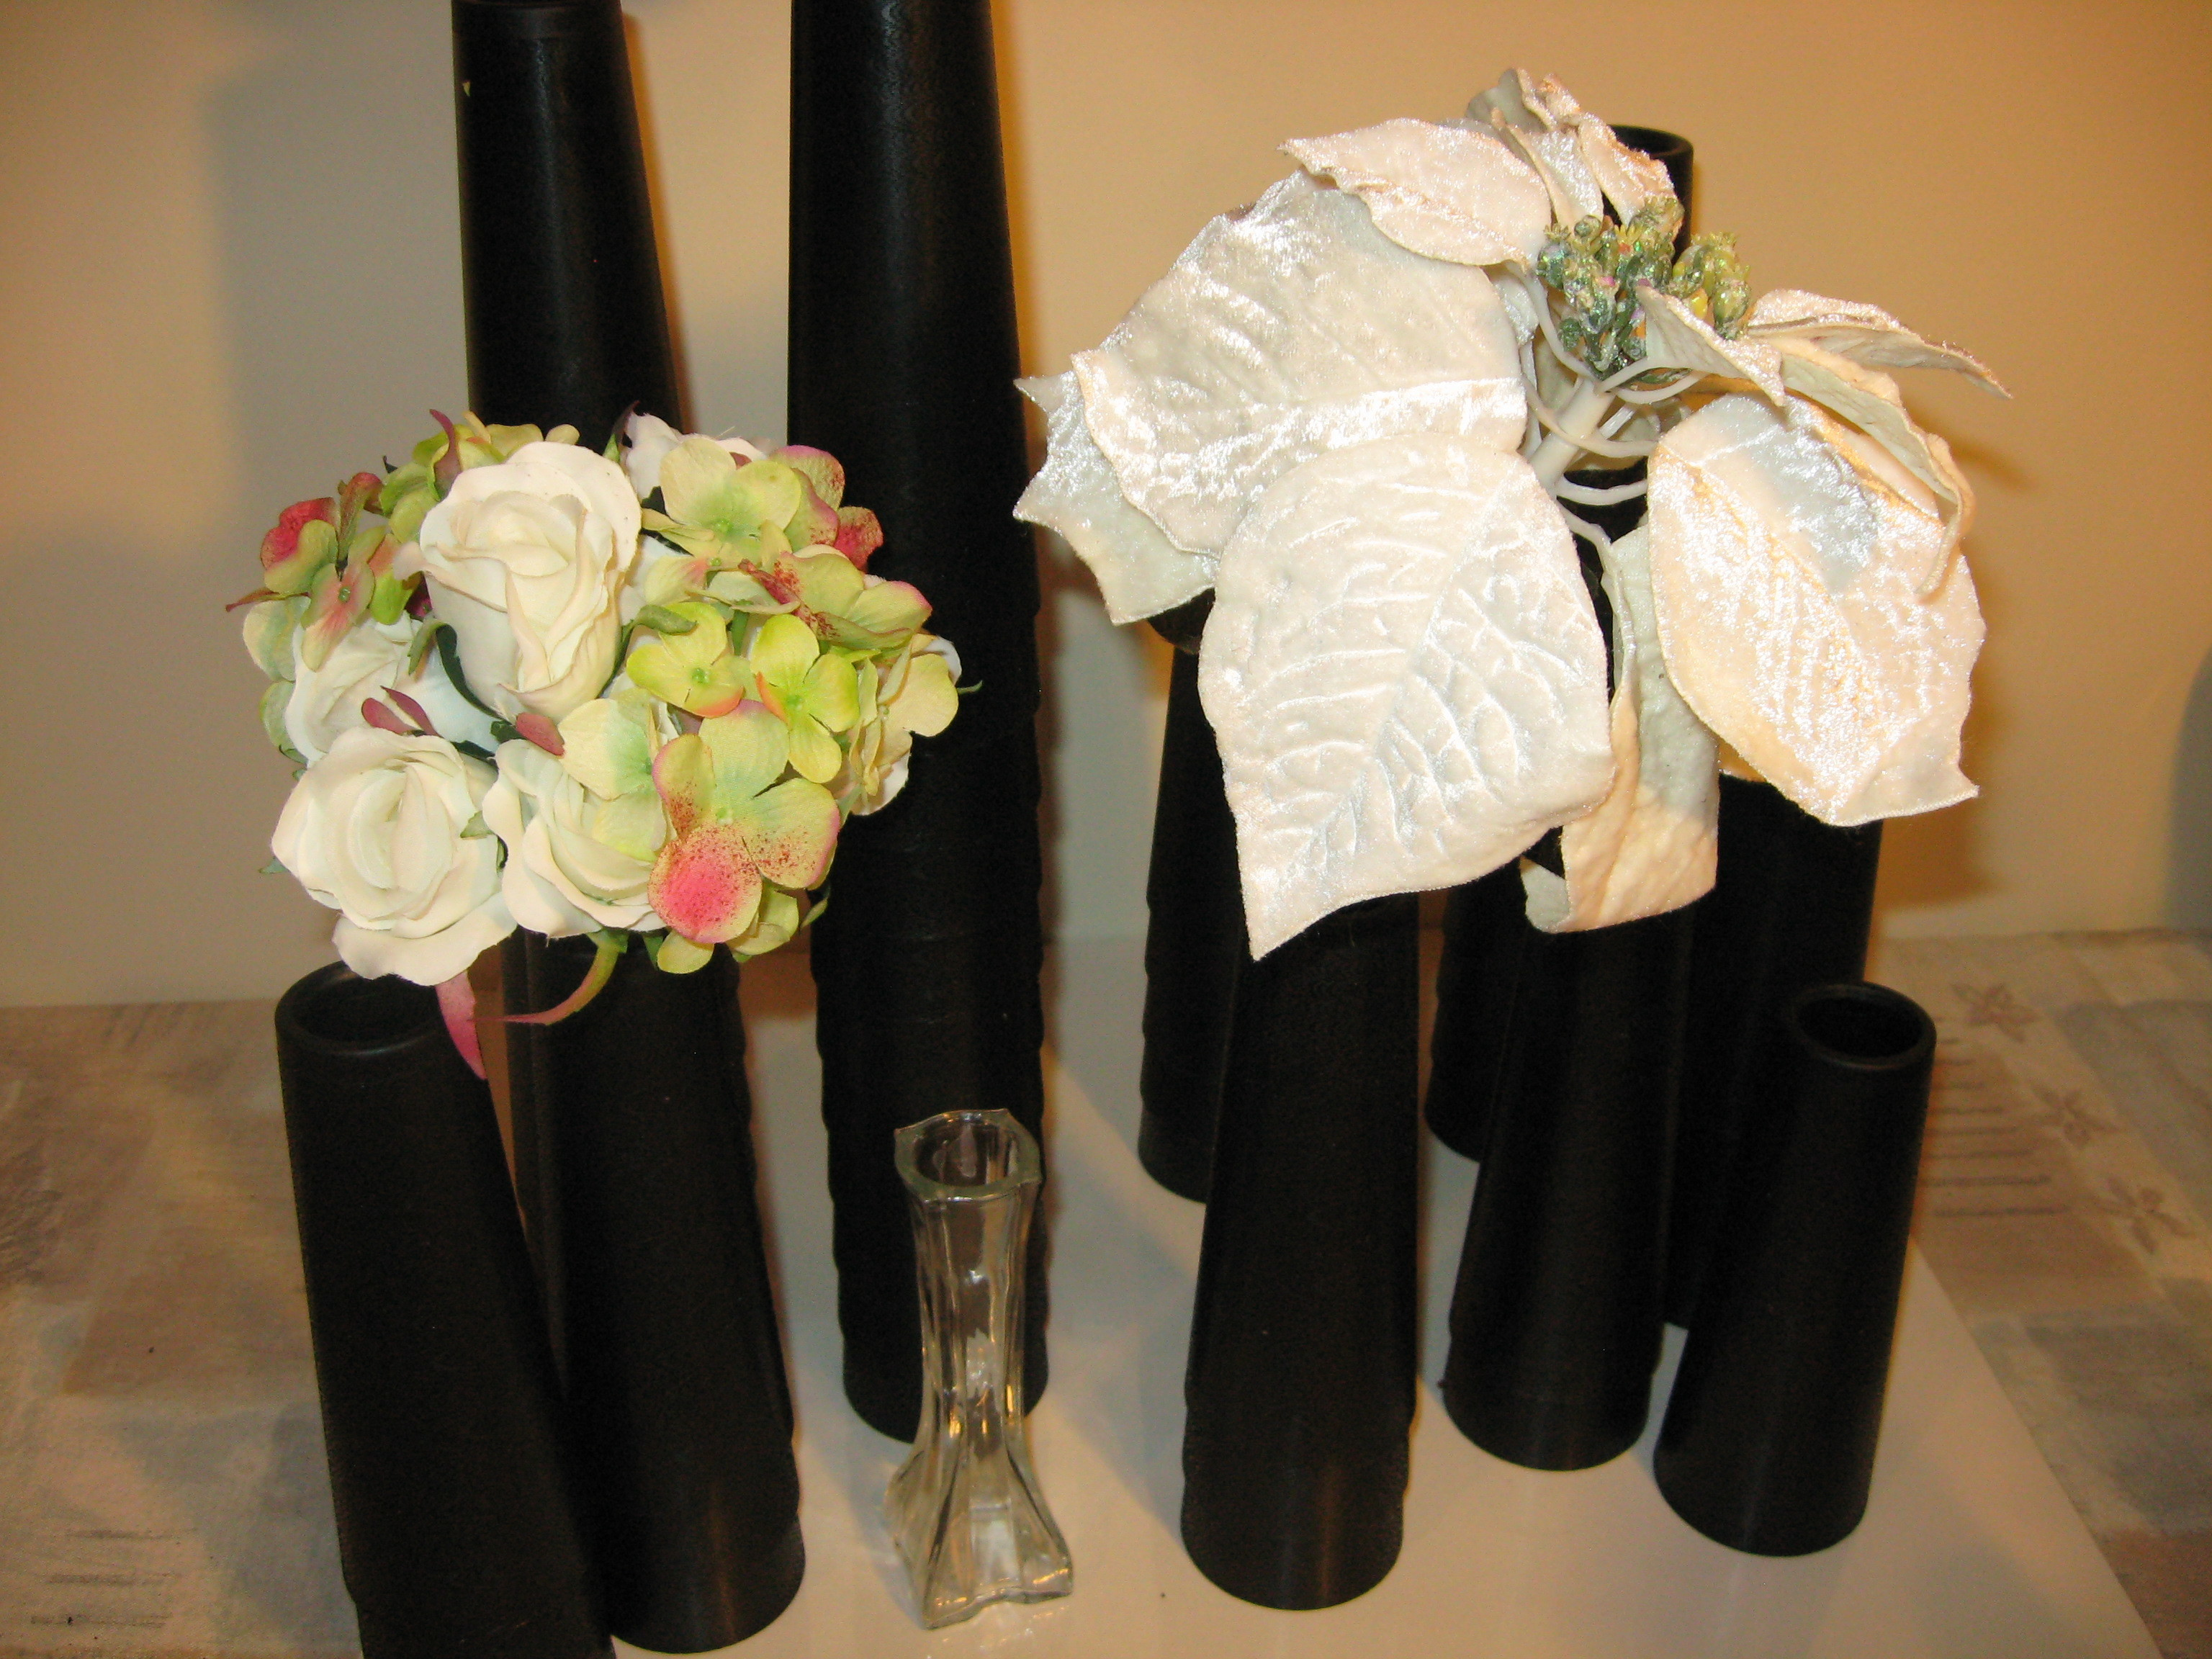 Black Cone Vases shown with white silk flowers